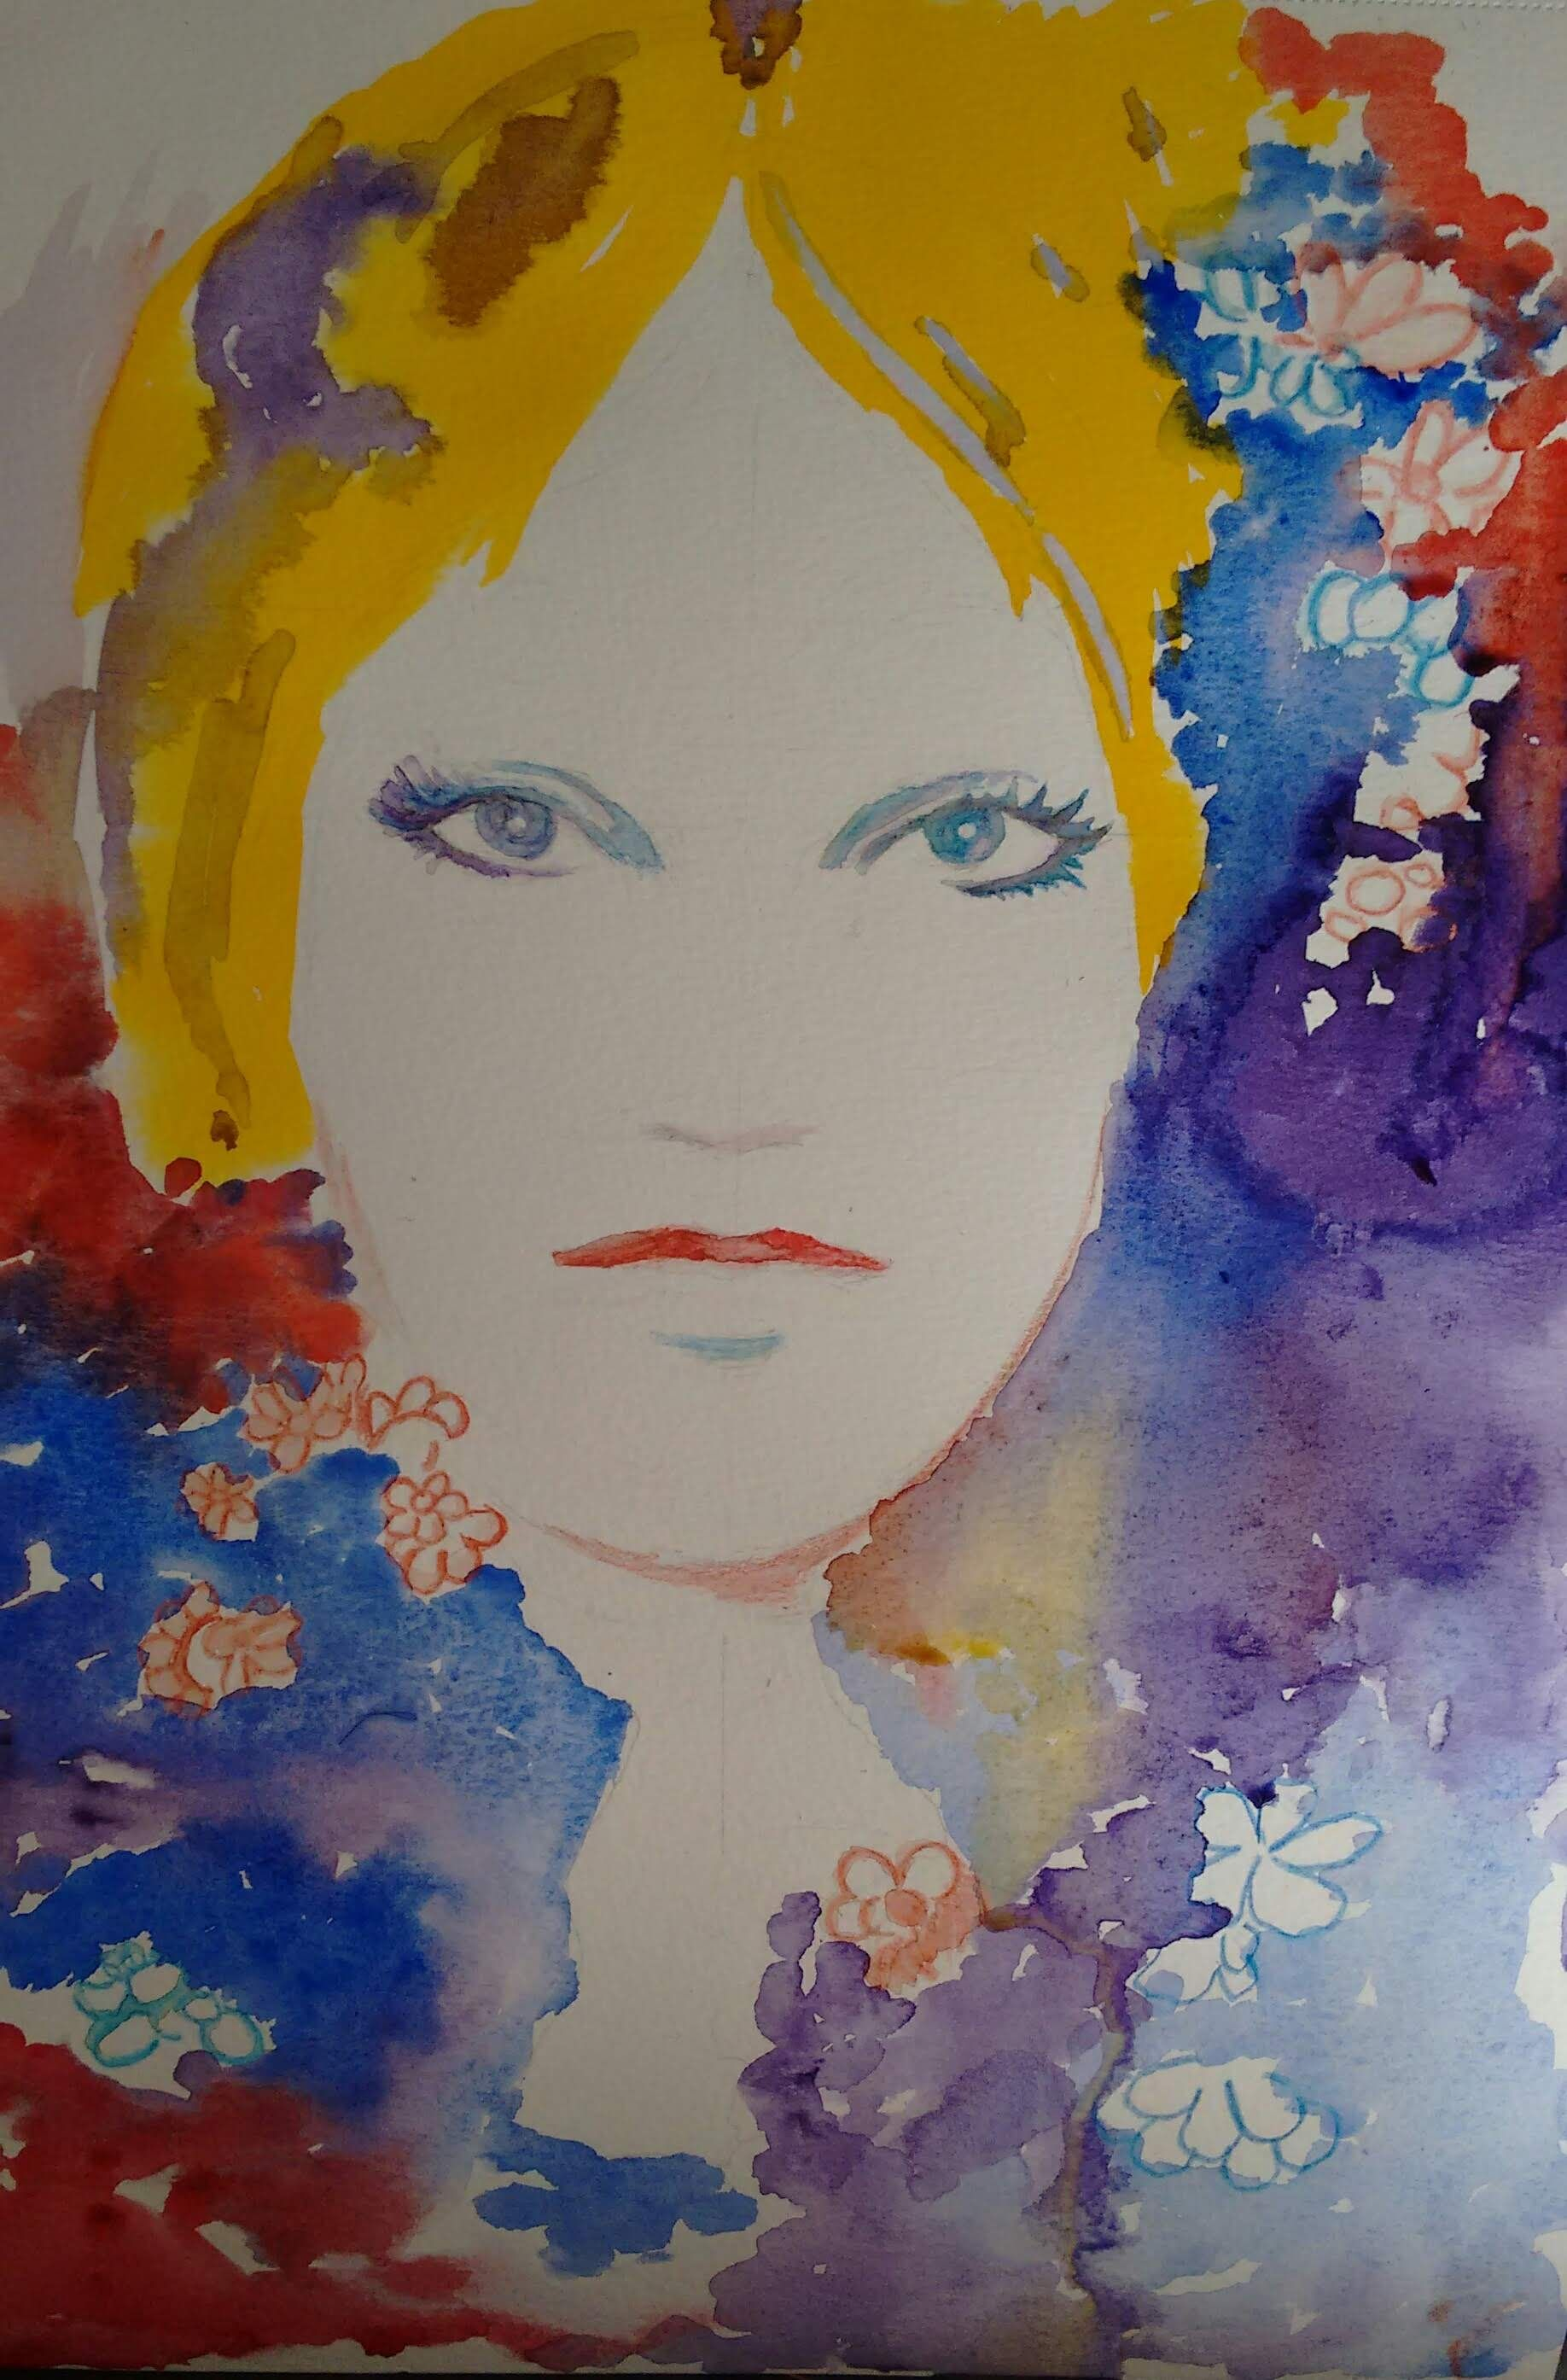 A Cate Parr style watercolor with a Bob Dylan song title